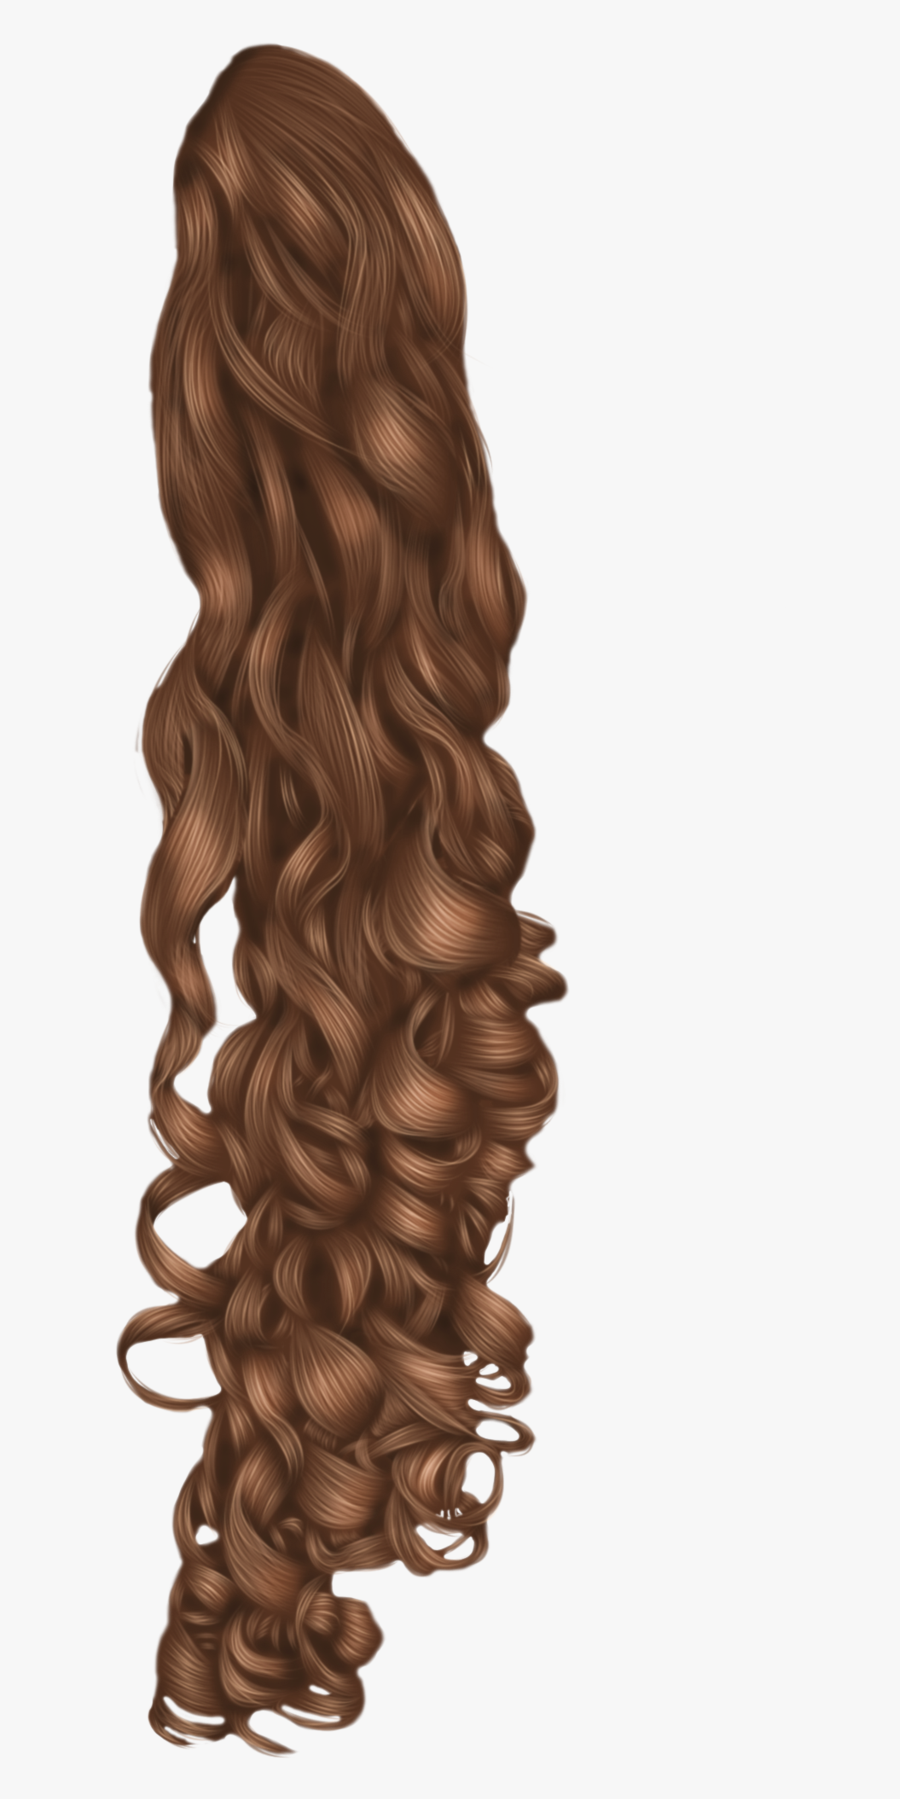 Black Hair Wig Hairstyle - Transparent Curly Hair Png, Transparent Clipart